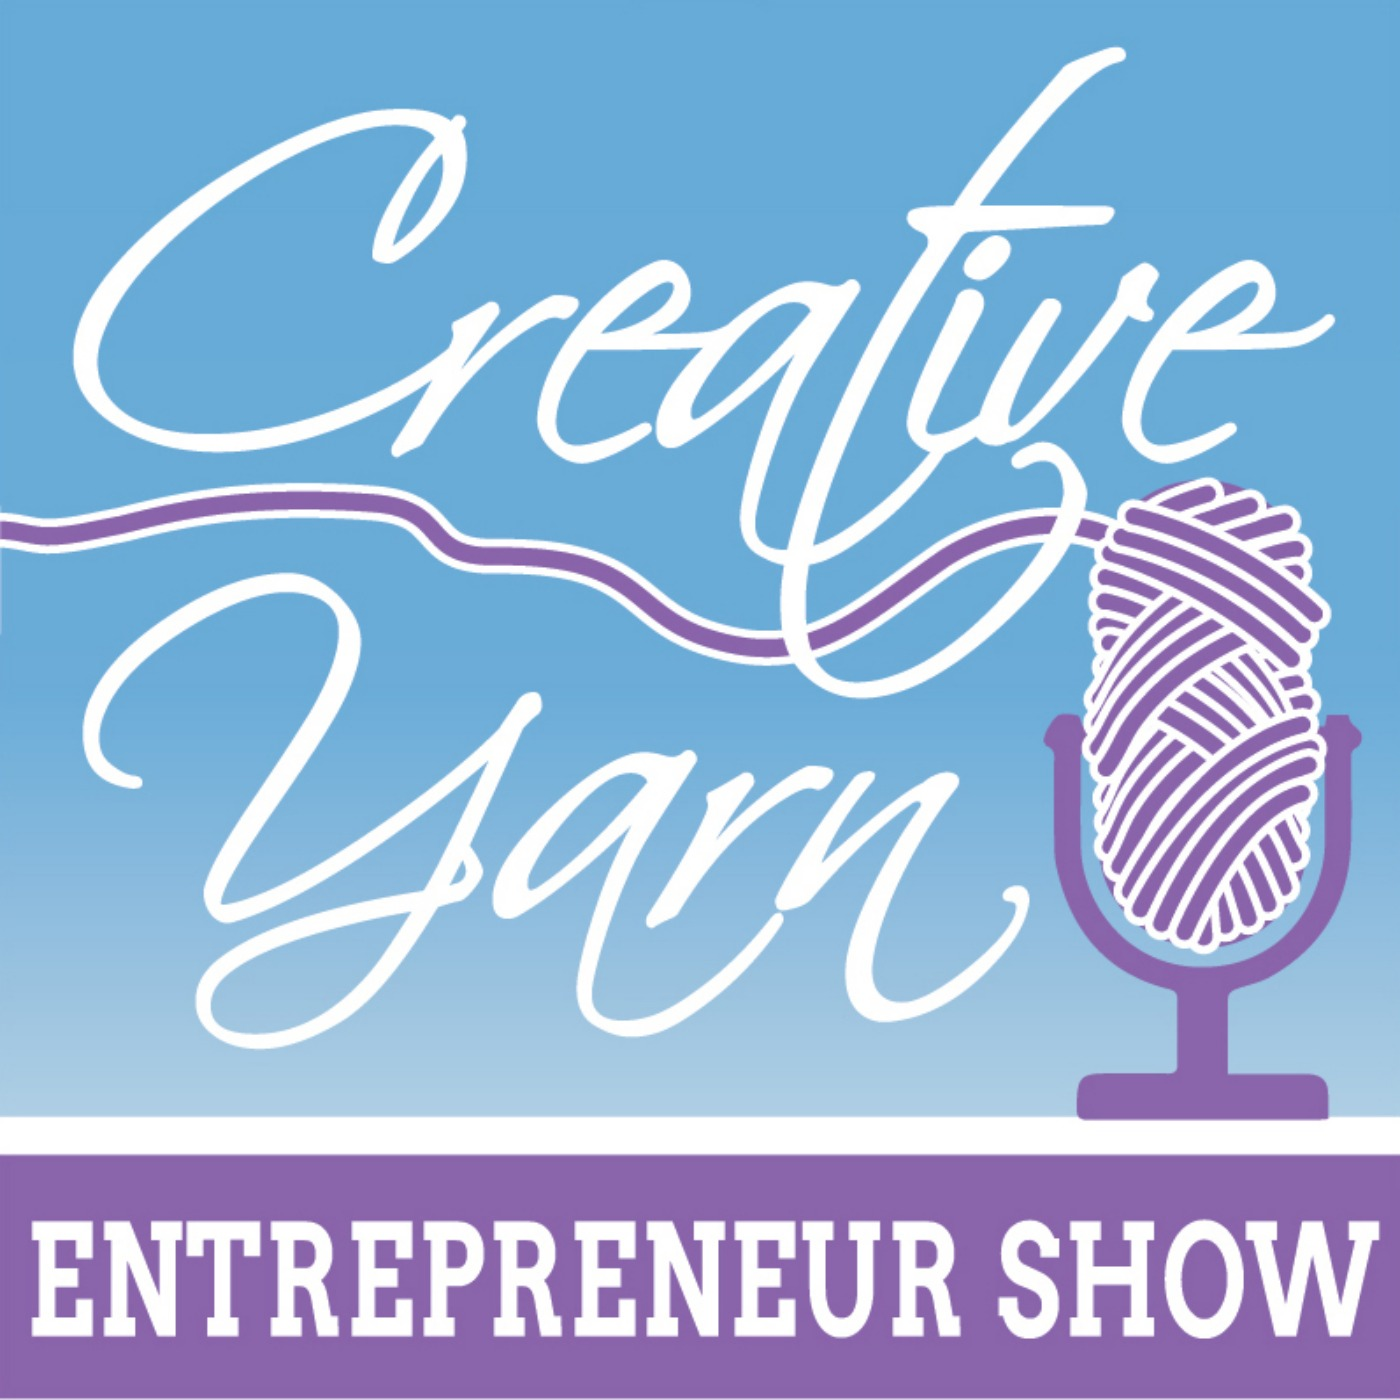 Episode 34: How to Source Yarn (Inexpensively) for Your Business - The Creative Yarn Entrepreneur Show